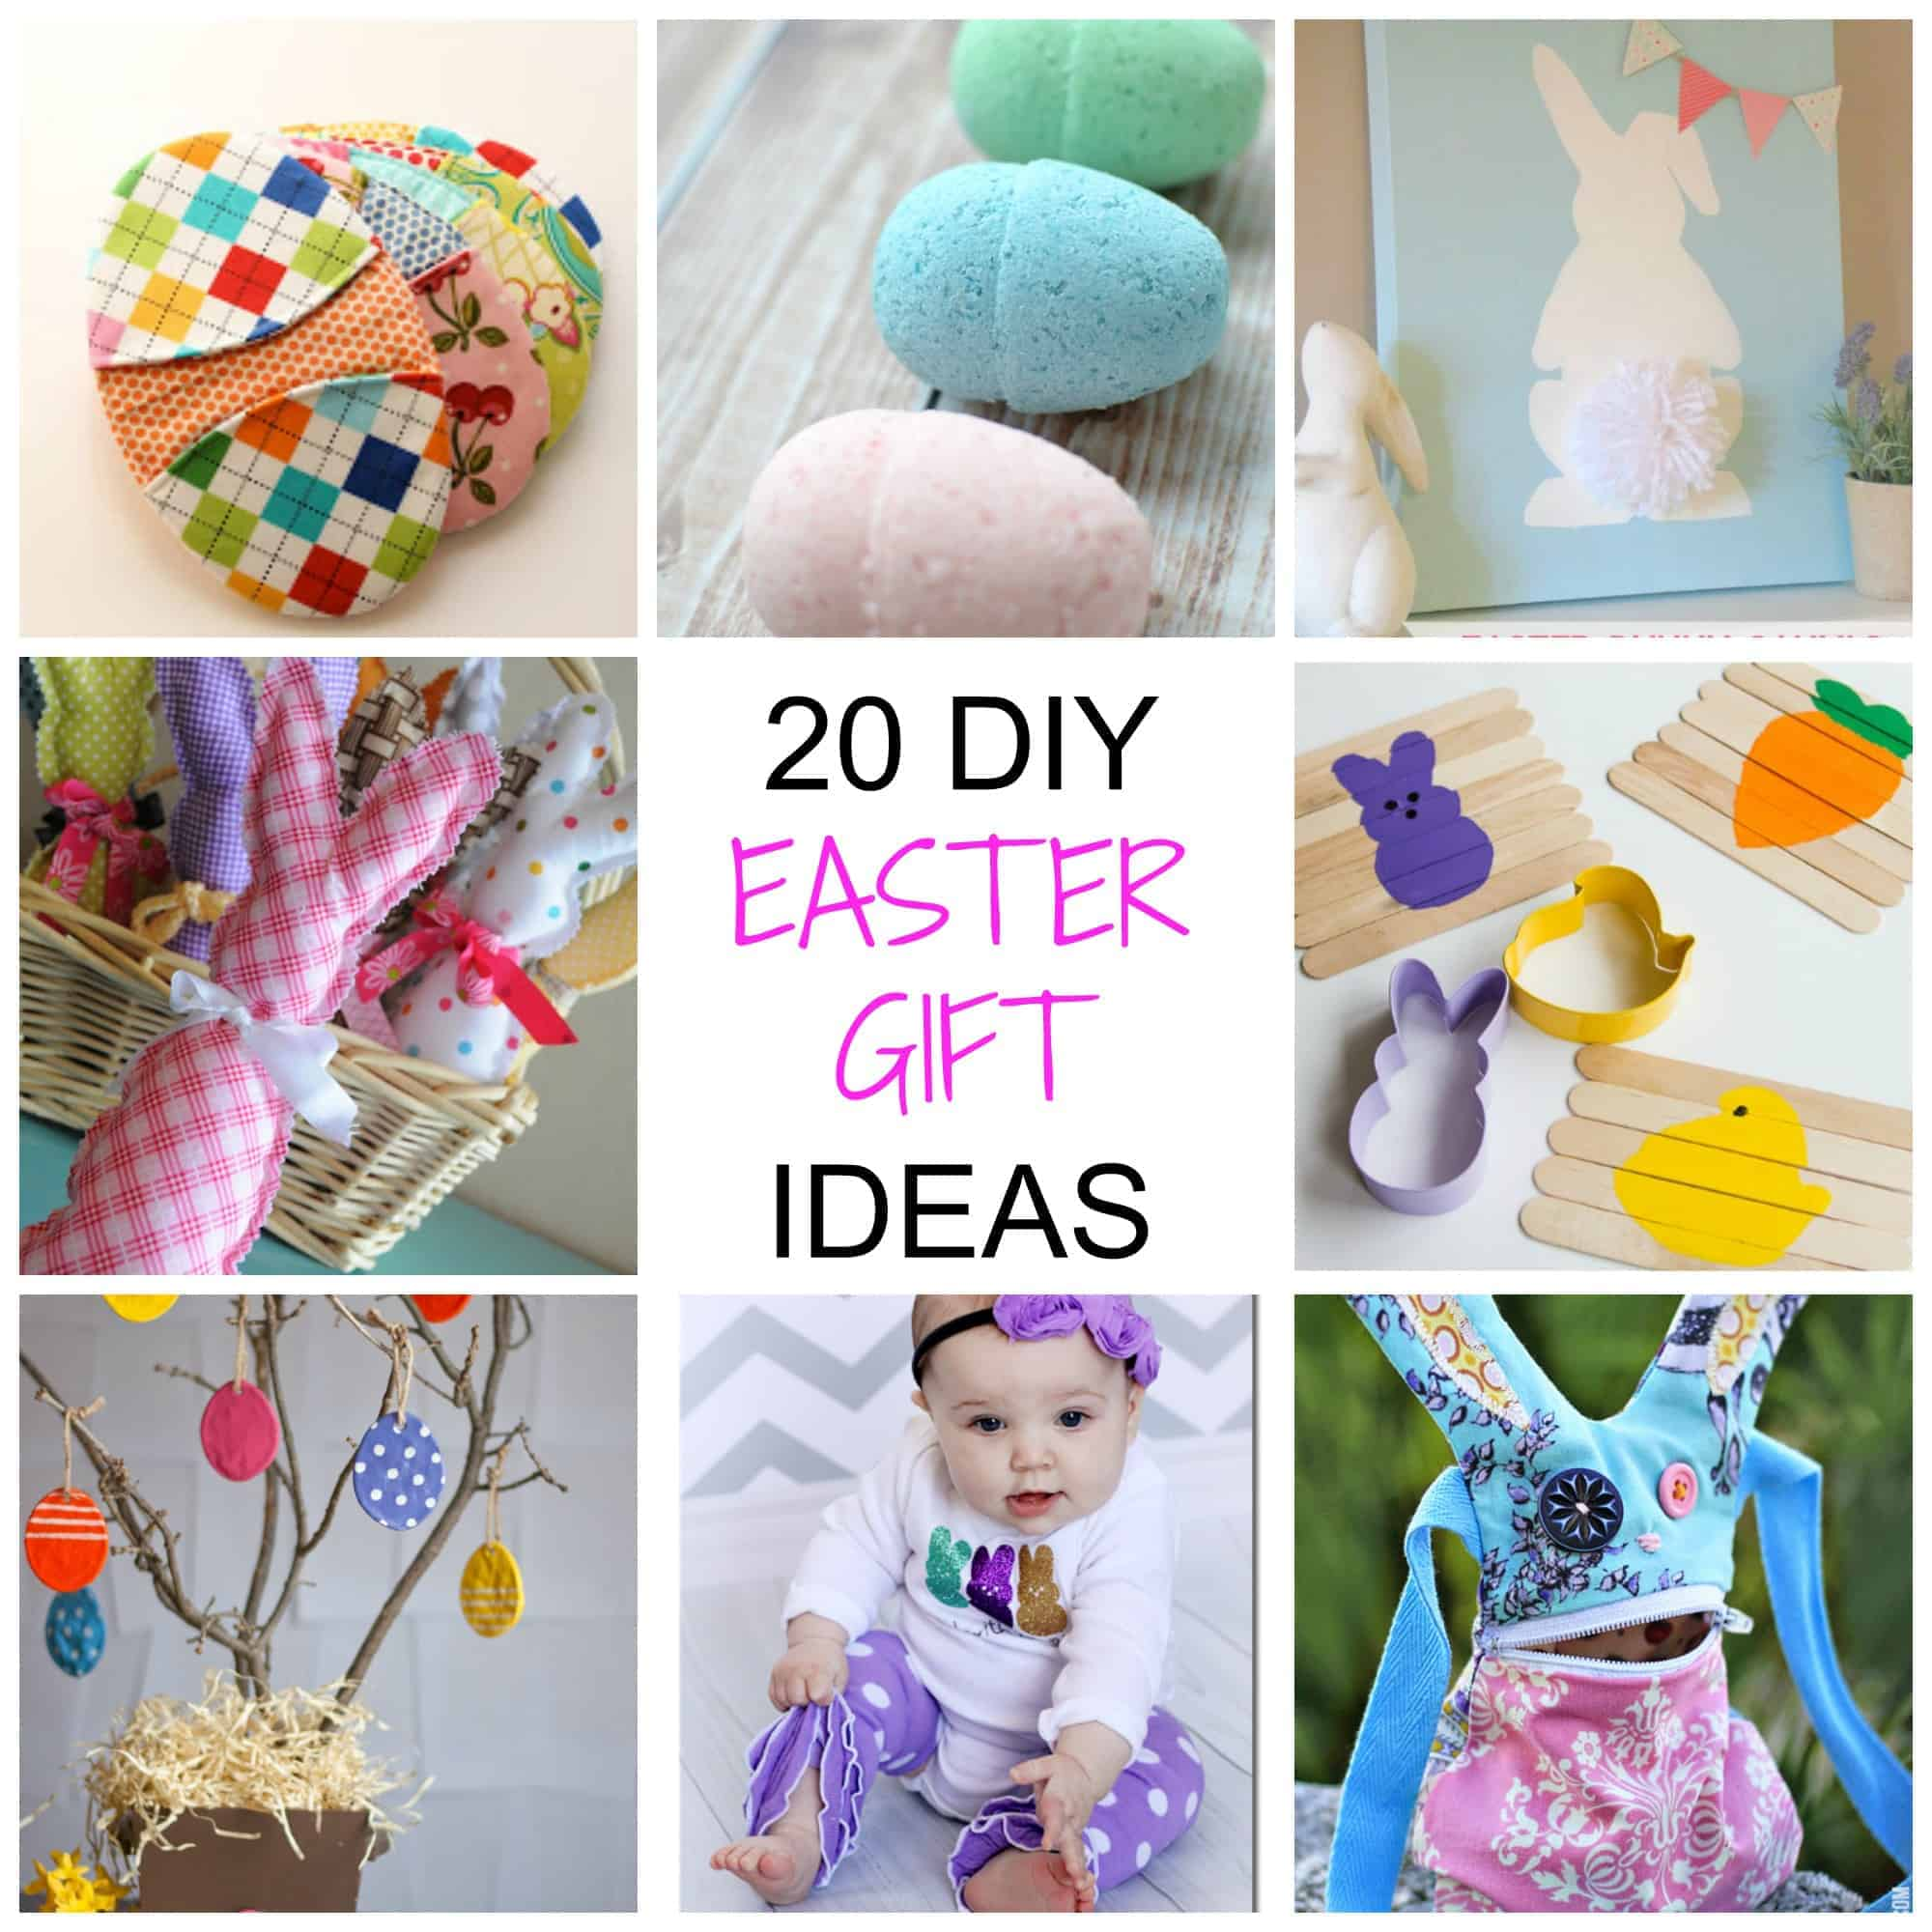 20 non chocolate diy easter gifts simplify create inspire diy easter gift ideas negle Gallery